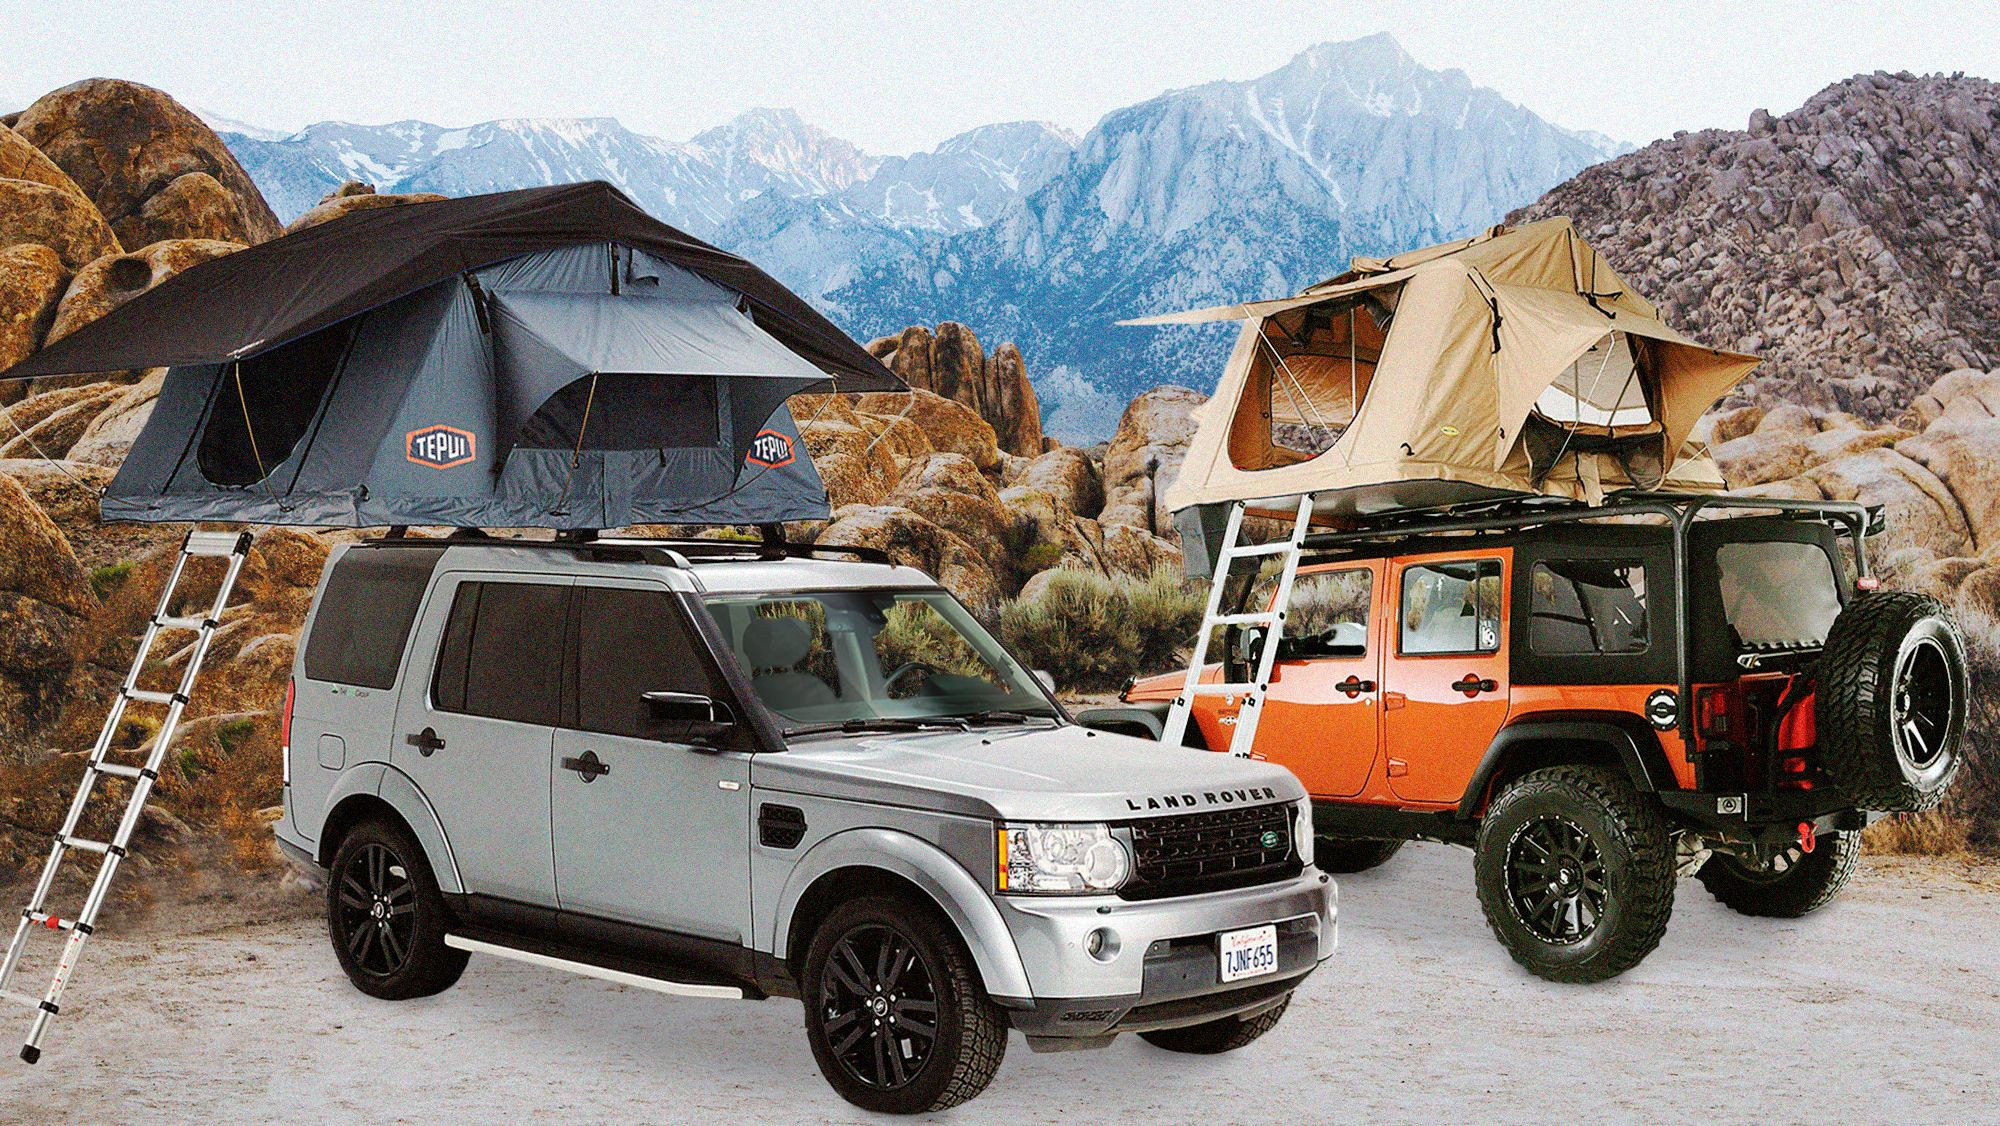 Rooftop Tents Lead & Car Camping Tents | Best Rooftop Tents 2019